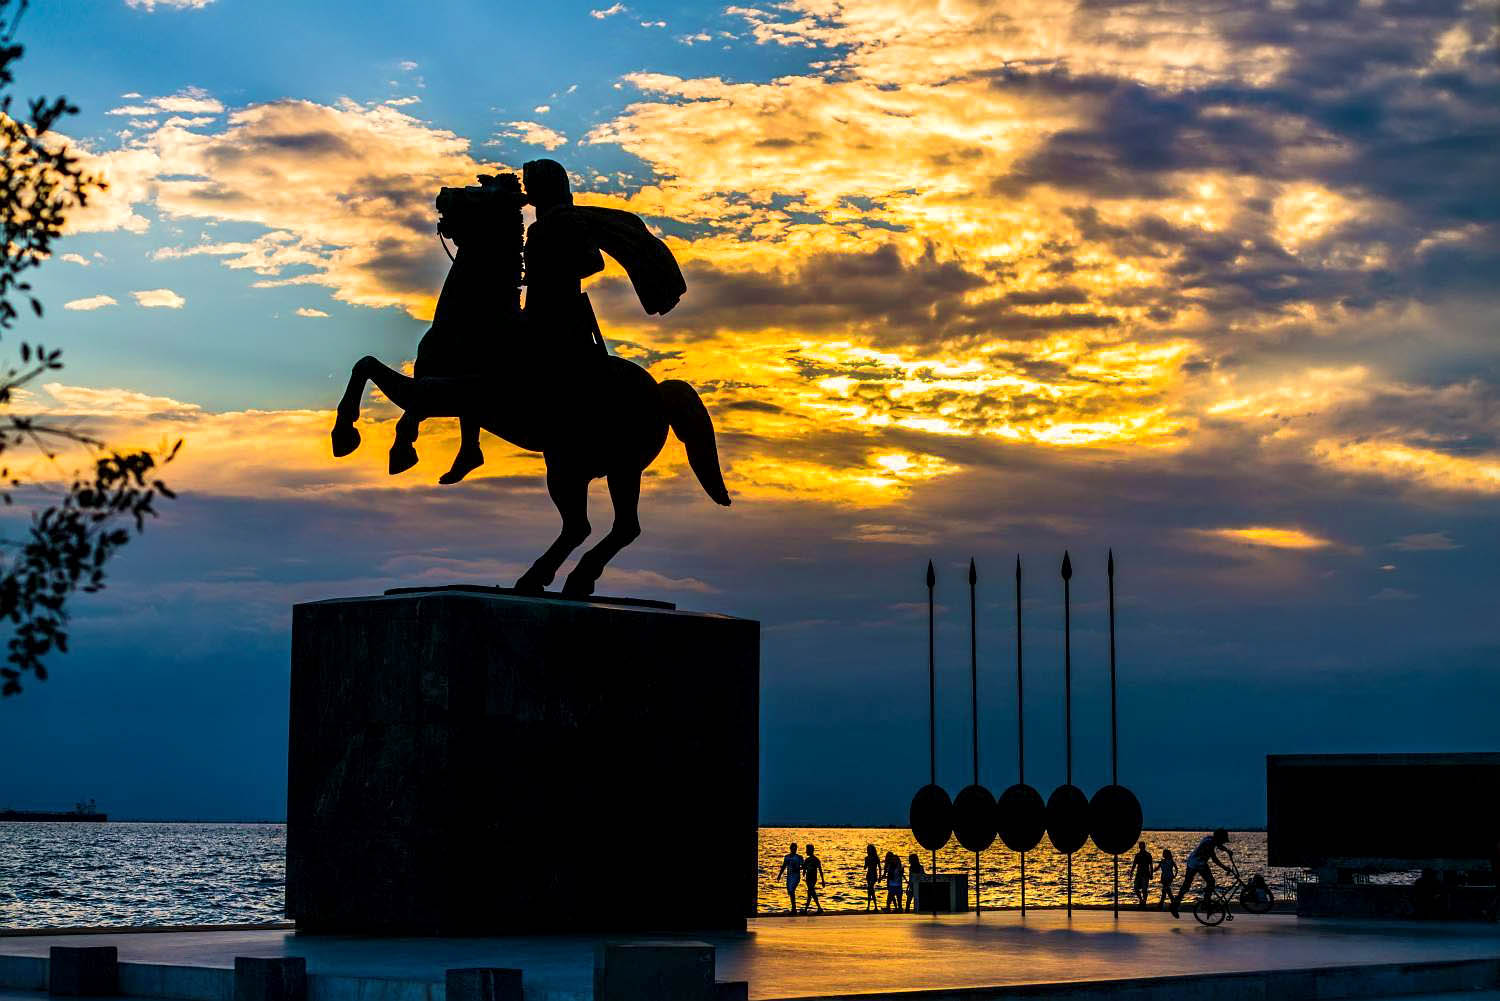 Alexander The Great Statue    The imposing bronze statue of Alexander the Great riding his faithful companion of 20 years, Bucephalus, dominates Thessaloniki's Nea Paralia, a few meters away from another city landmark, the White Tower. This is one of the city's most photographed sights, which was erected in 1973 with public fundraising. It was unveiled in 1974. The equestrian statue of the Macedonian commander was created by the sculptor Evangelos Moustakas and is the tallest in Greece, reaching almost 6.15 meters in height.